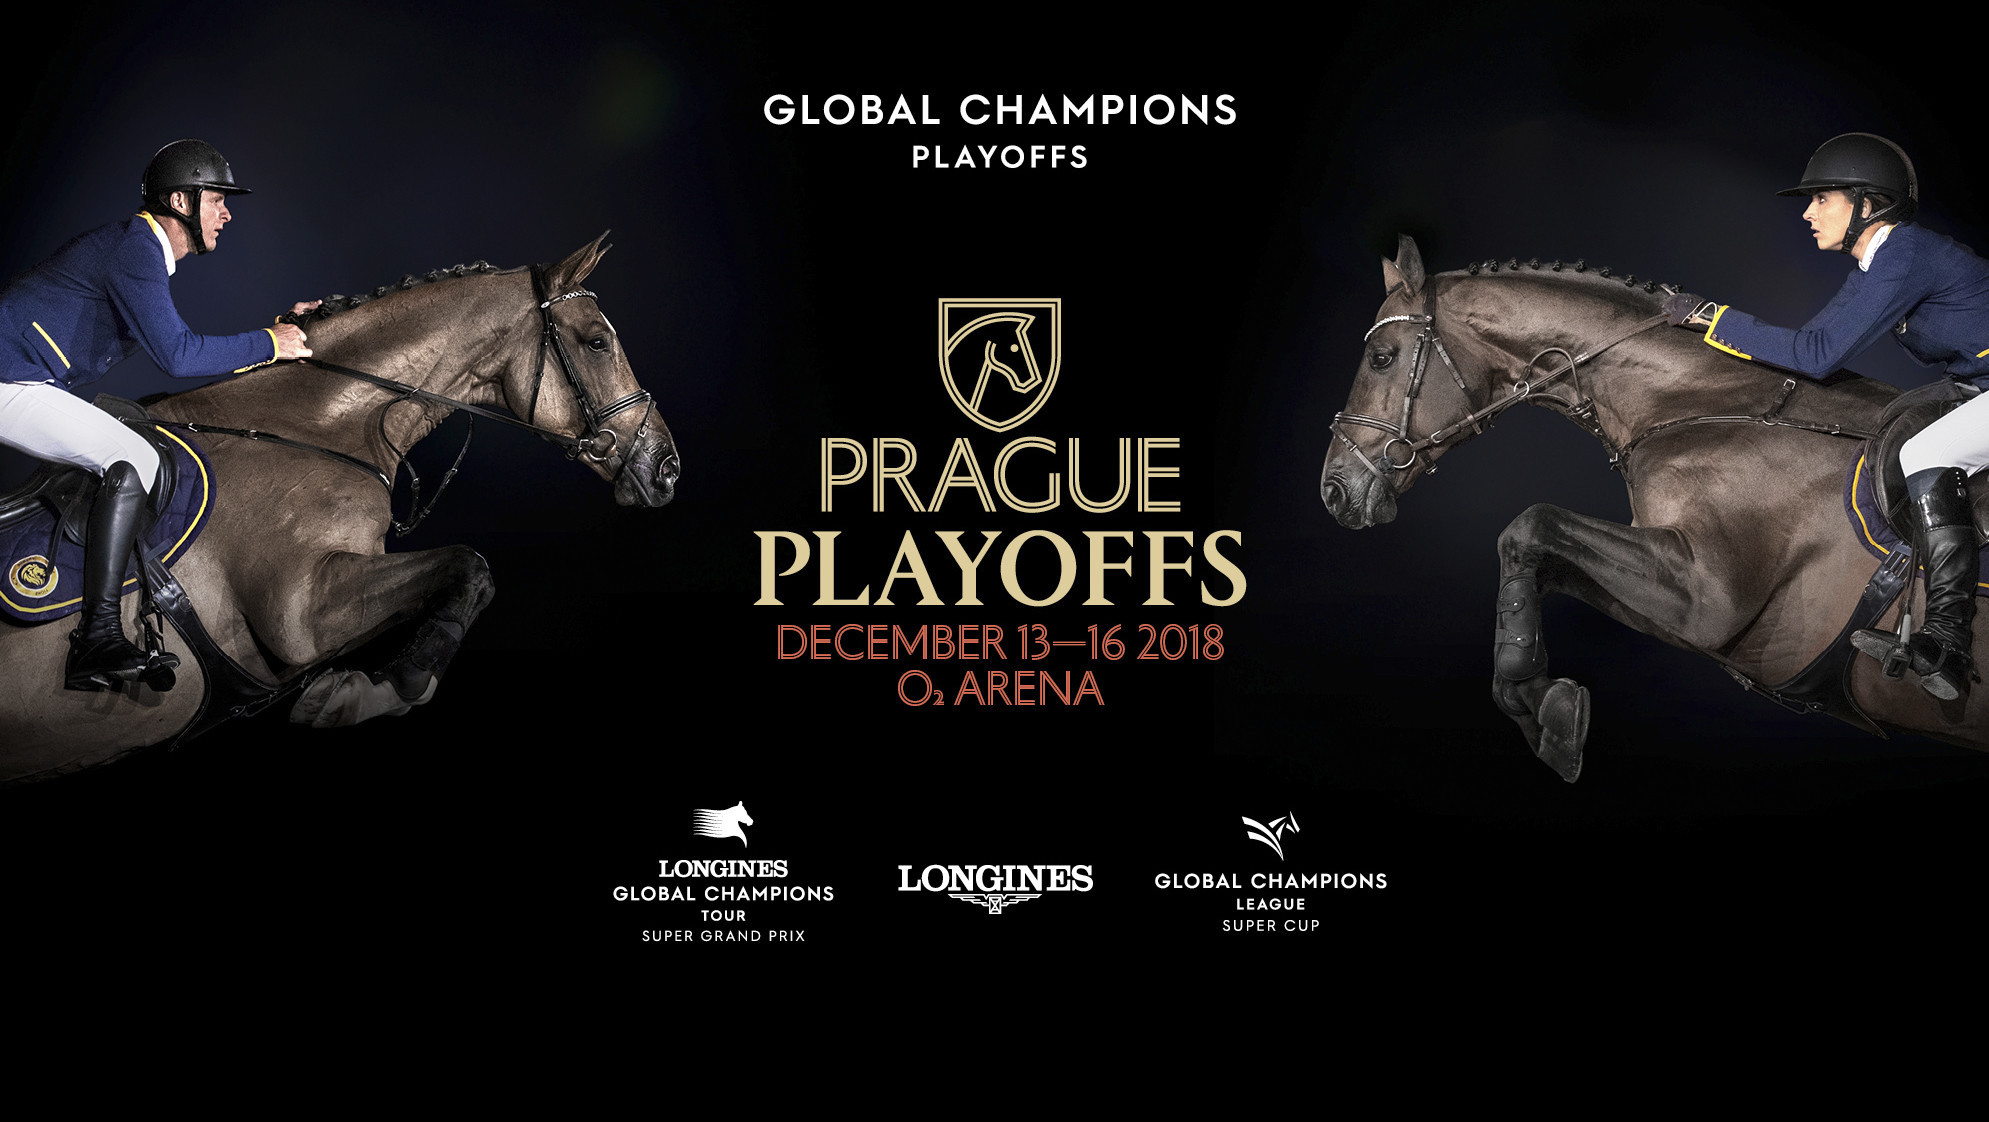 Prague braced for first Longines Global Champions Tour play-offs